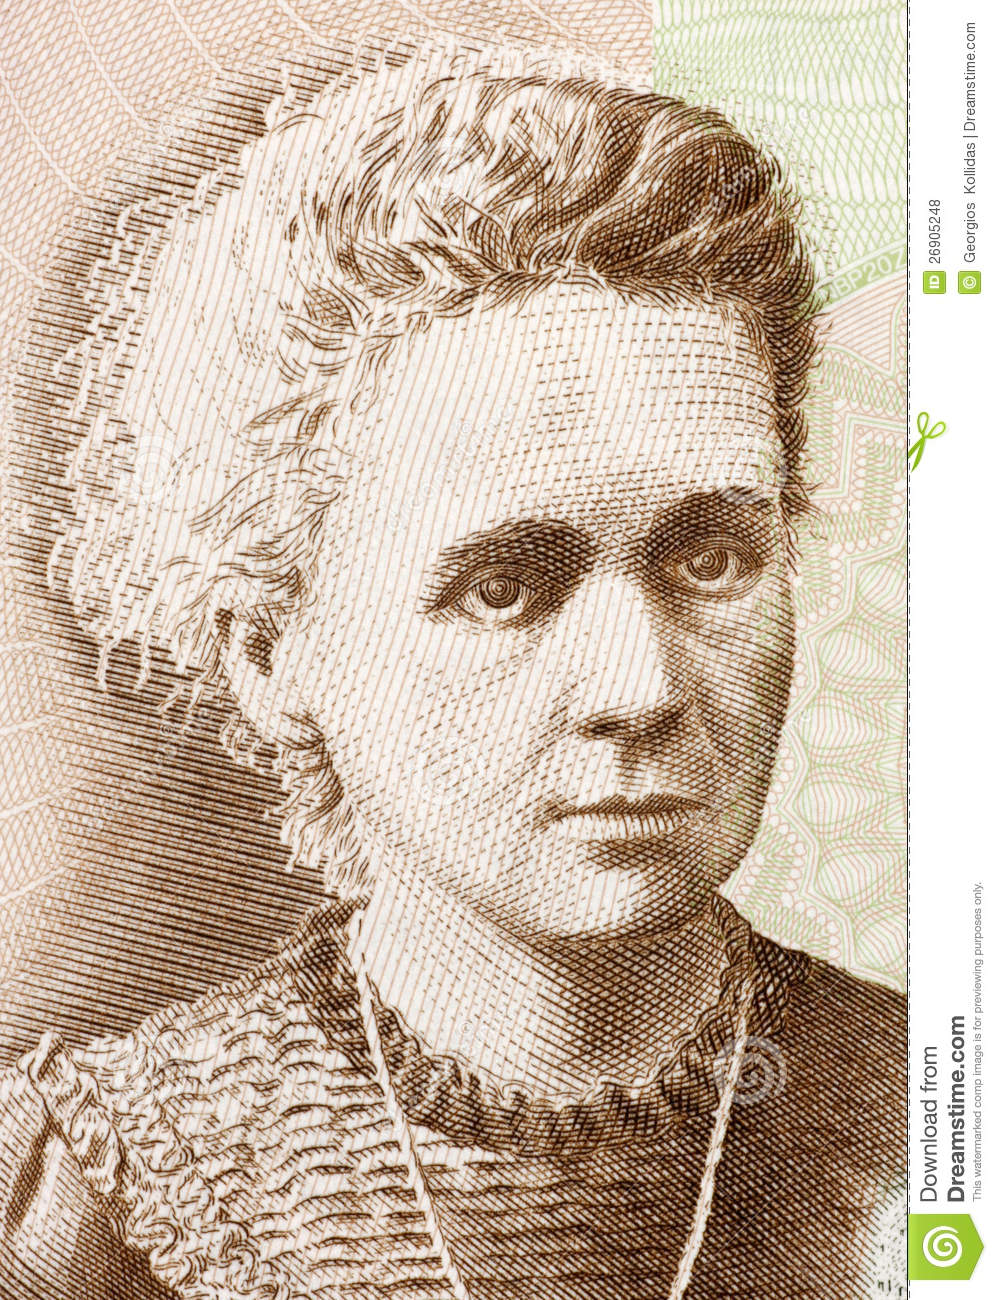 Marie Curie (1867-1934) on 20 Zlotych 2011 Banknote from Poland ...